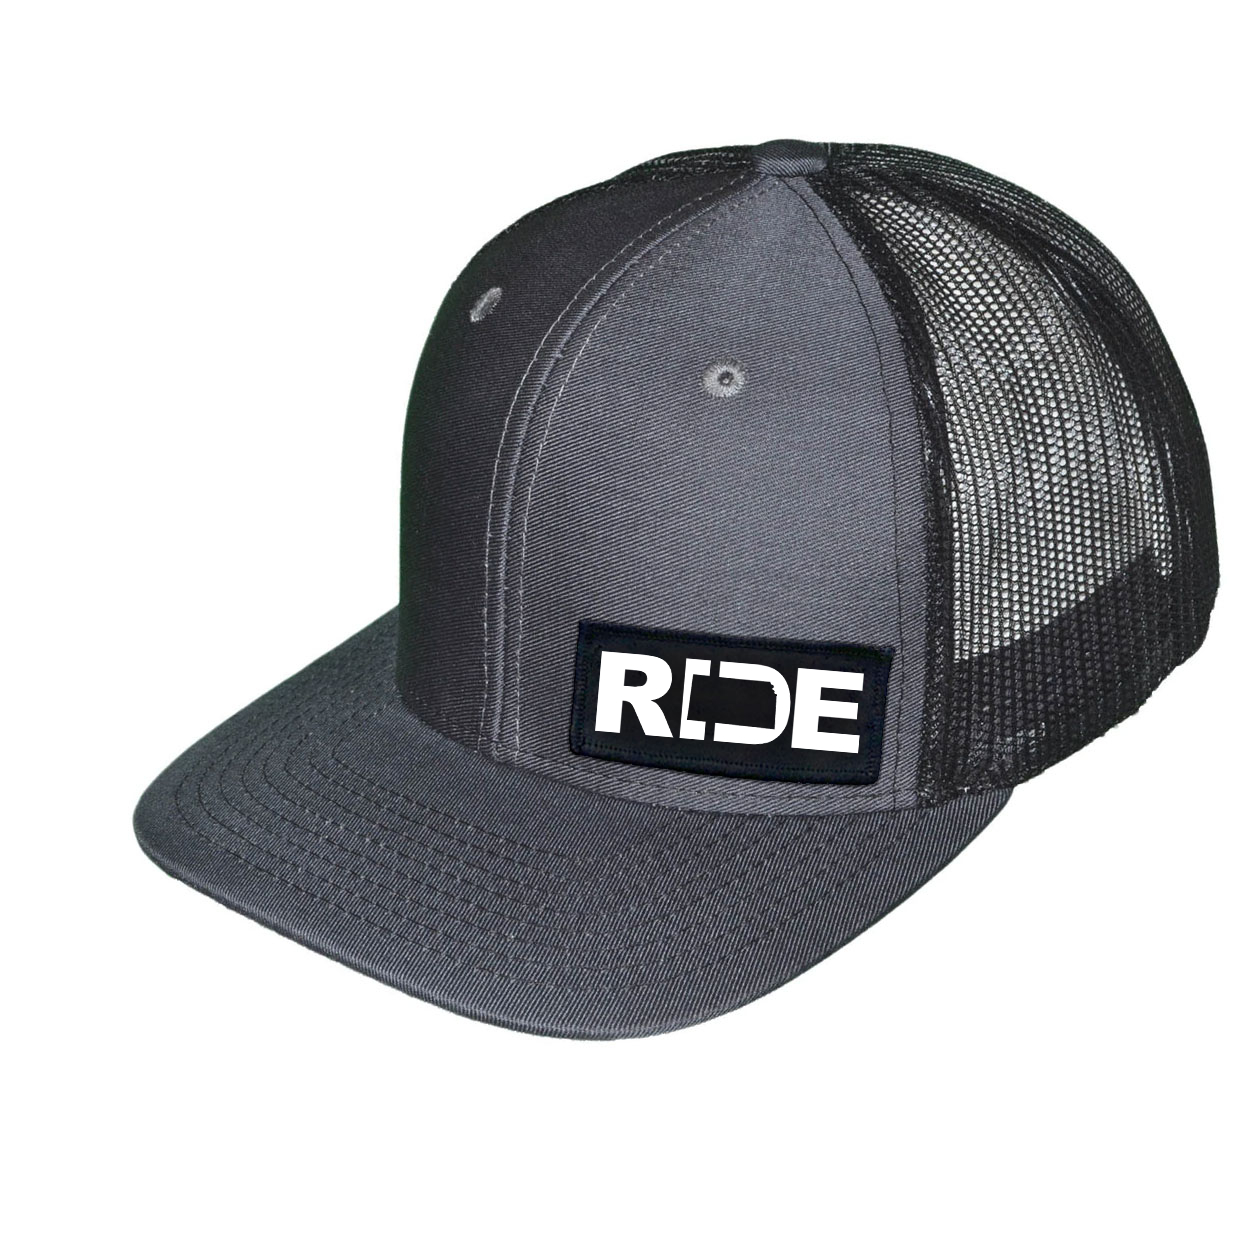 Ride Kansas Night Out Woven Patch Snapback Trucker Hat Dark Gray/Black (White Logo)